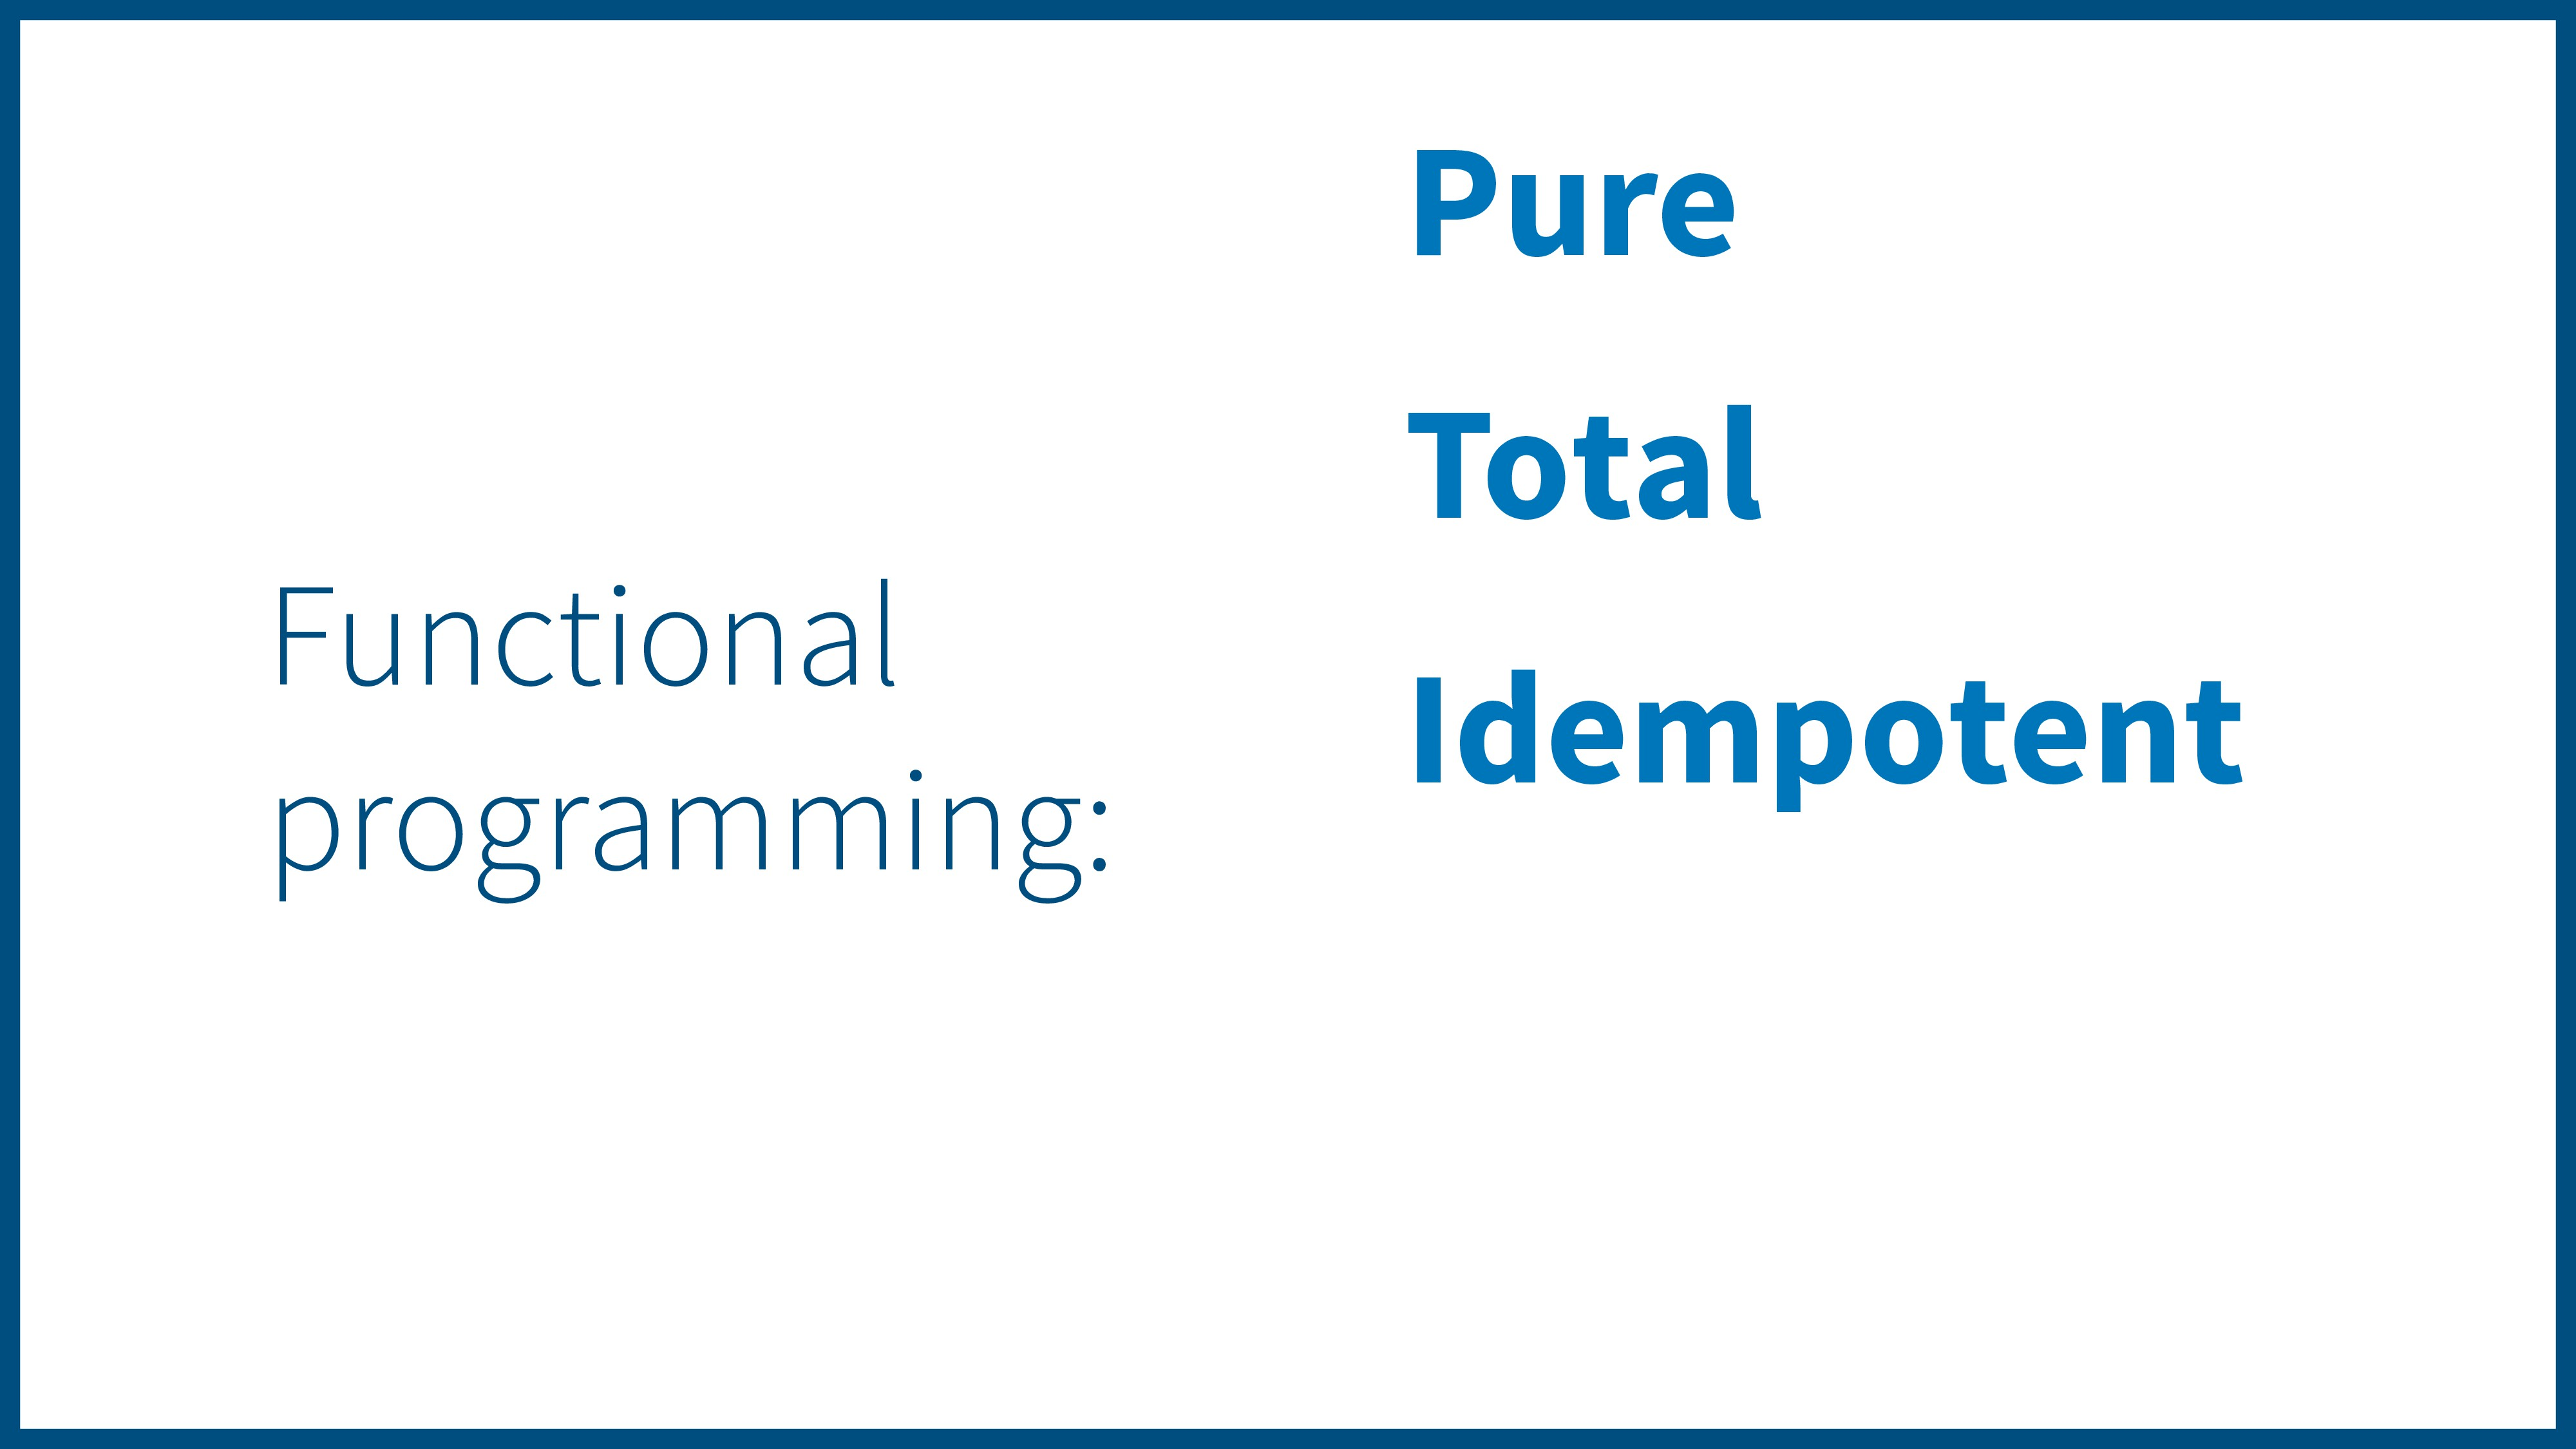 Pure Total Idempotent Functional programming: